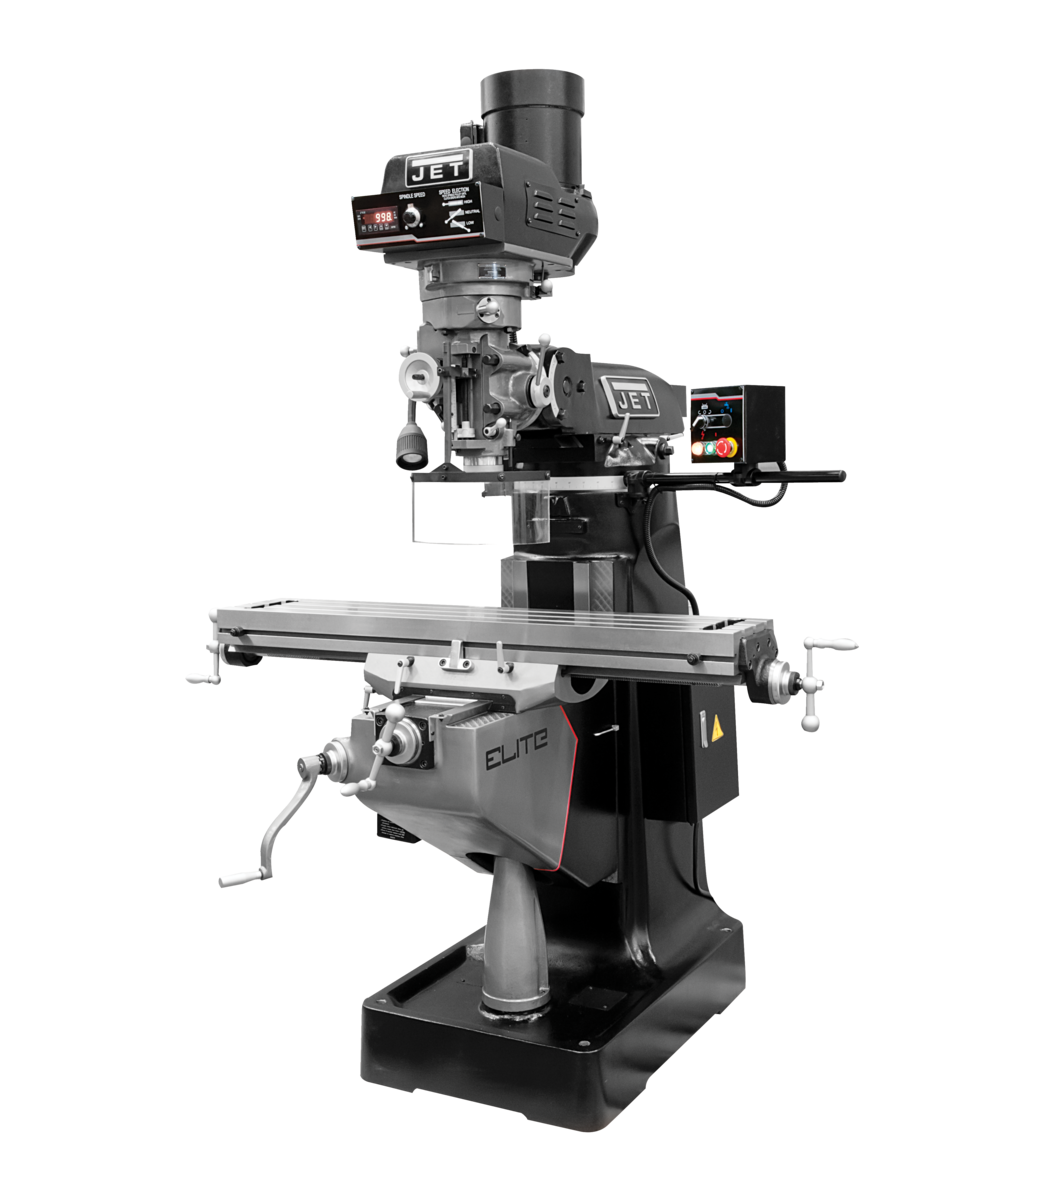 EVS-949 Mill with 3-Axis Newall DP700 (Knee) DRO and X, Y, Z-Axis JET Powerfeeds and USA Made Air Draw Bar